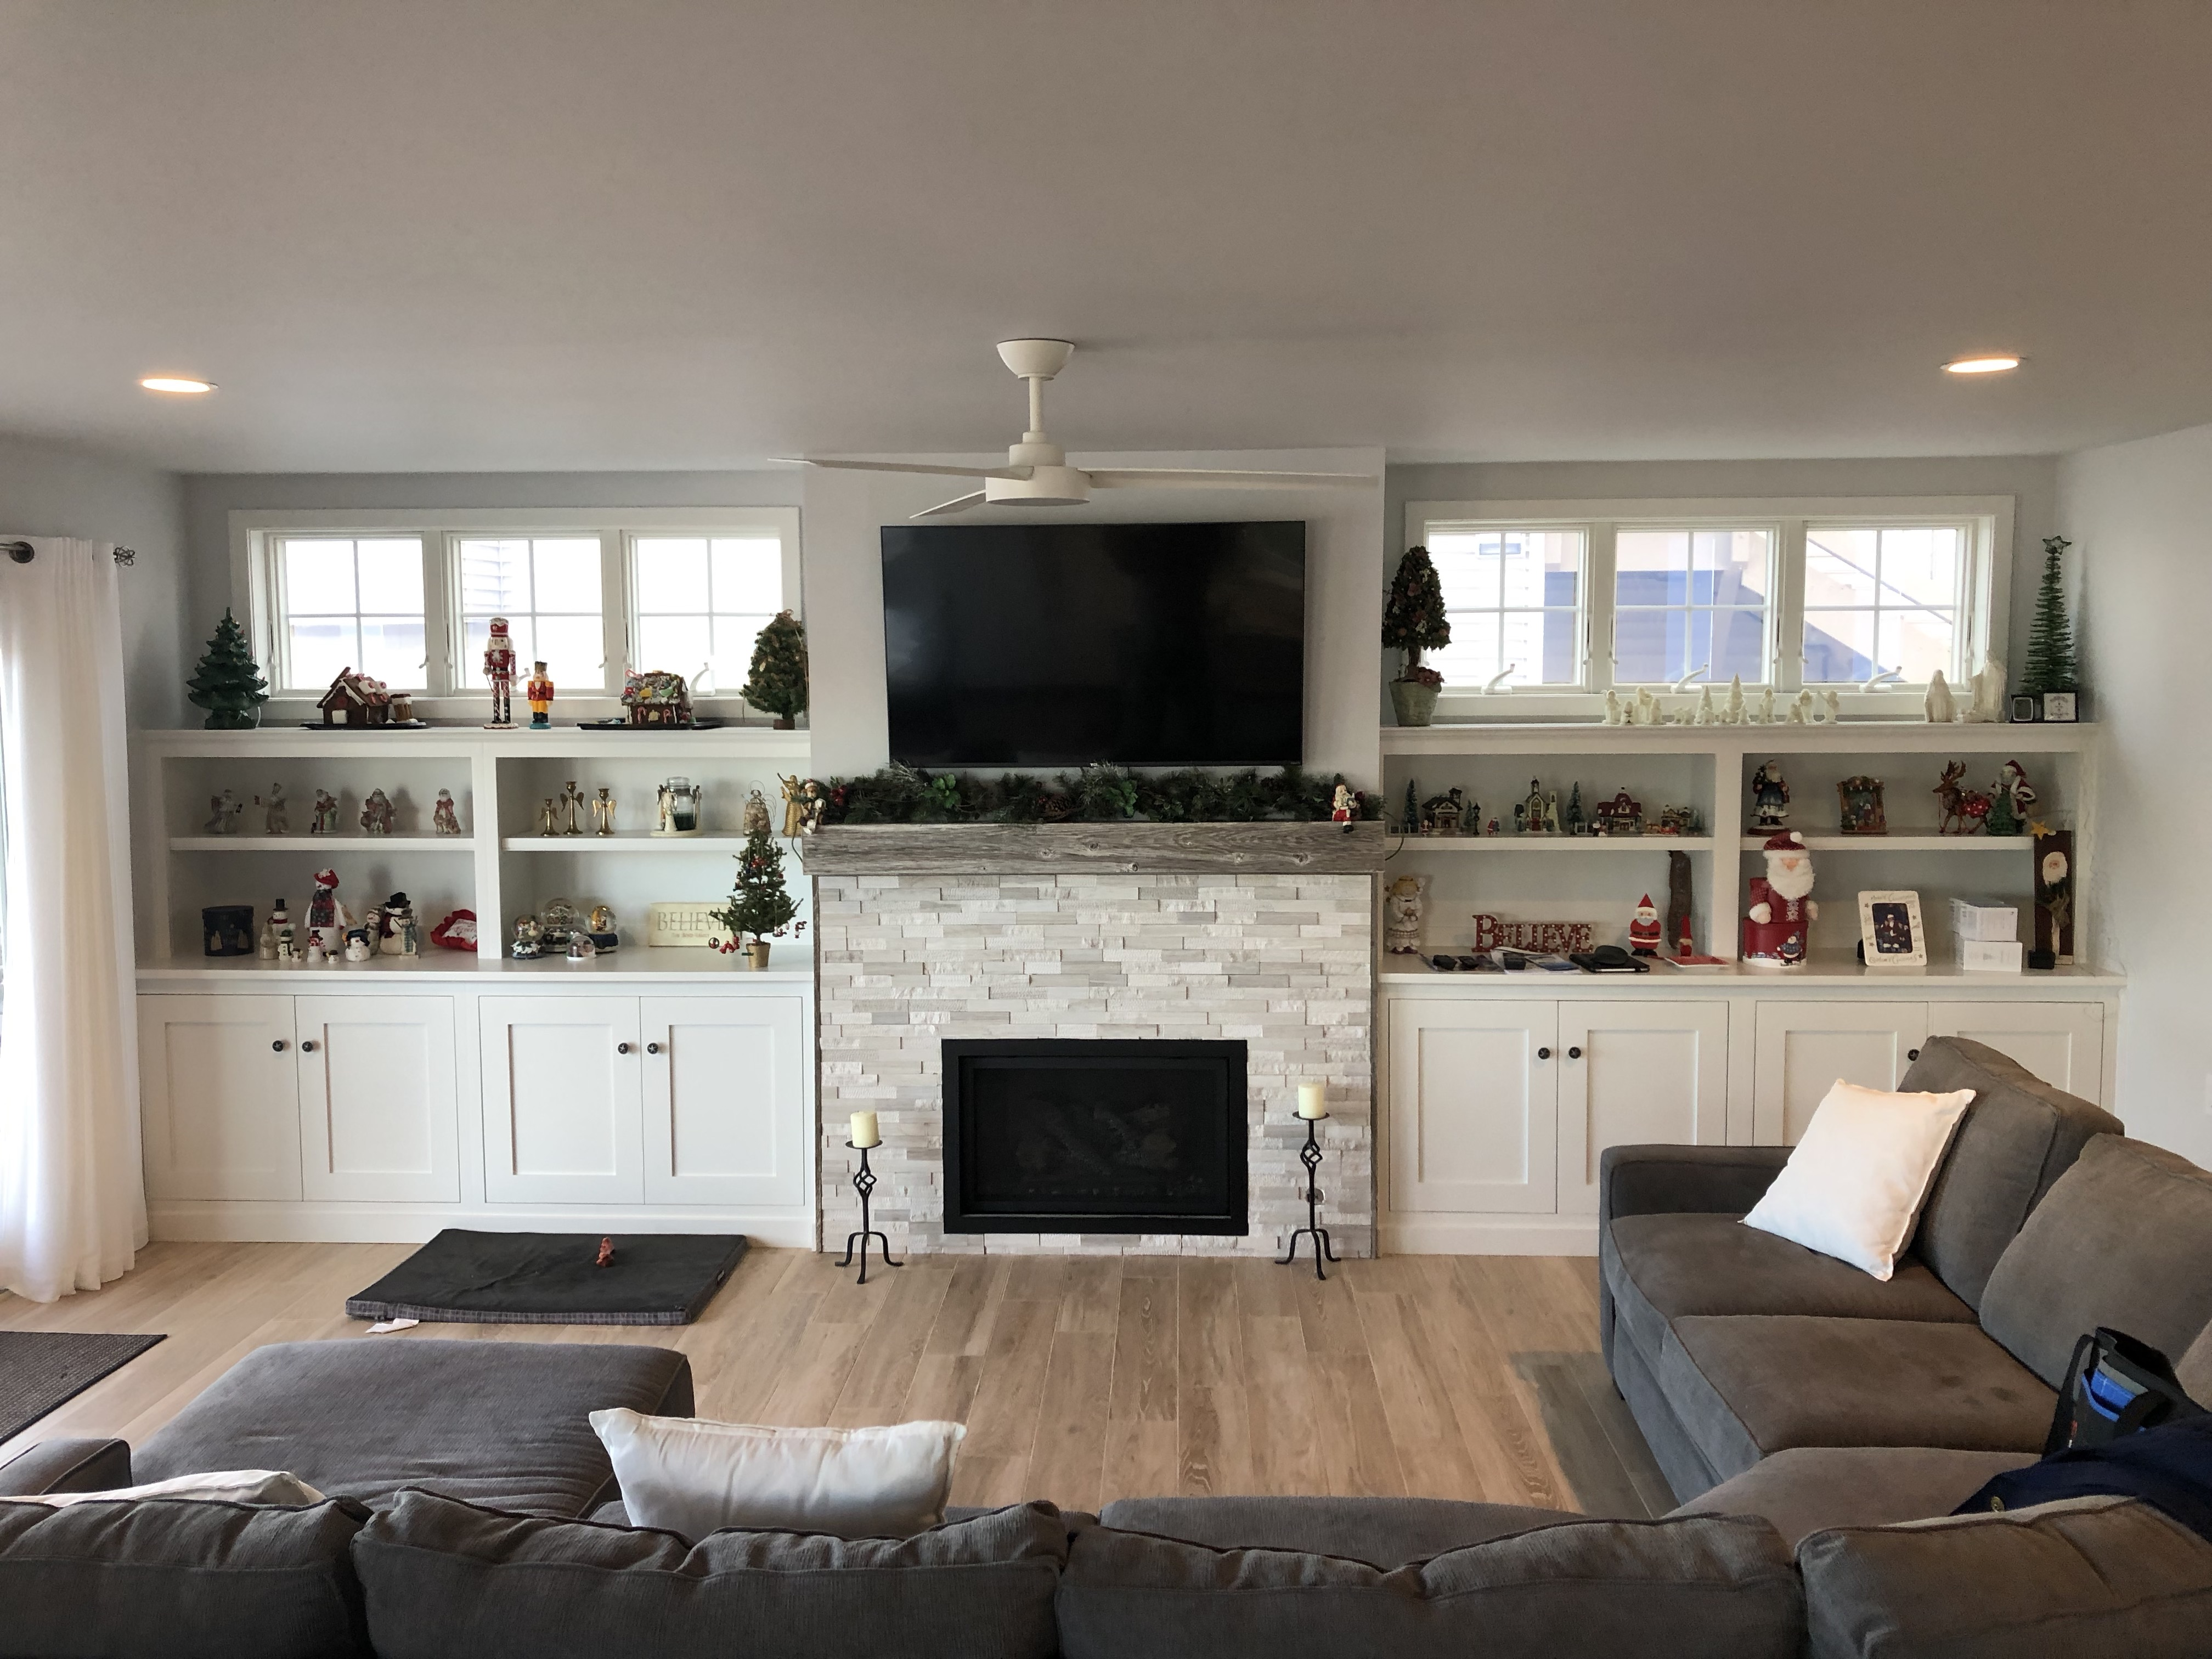 Family Room Cabinetry and Mantel